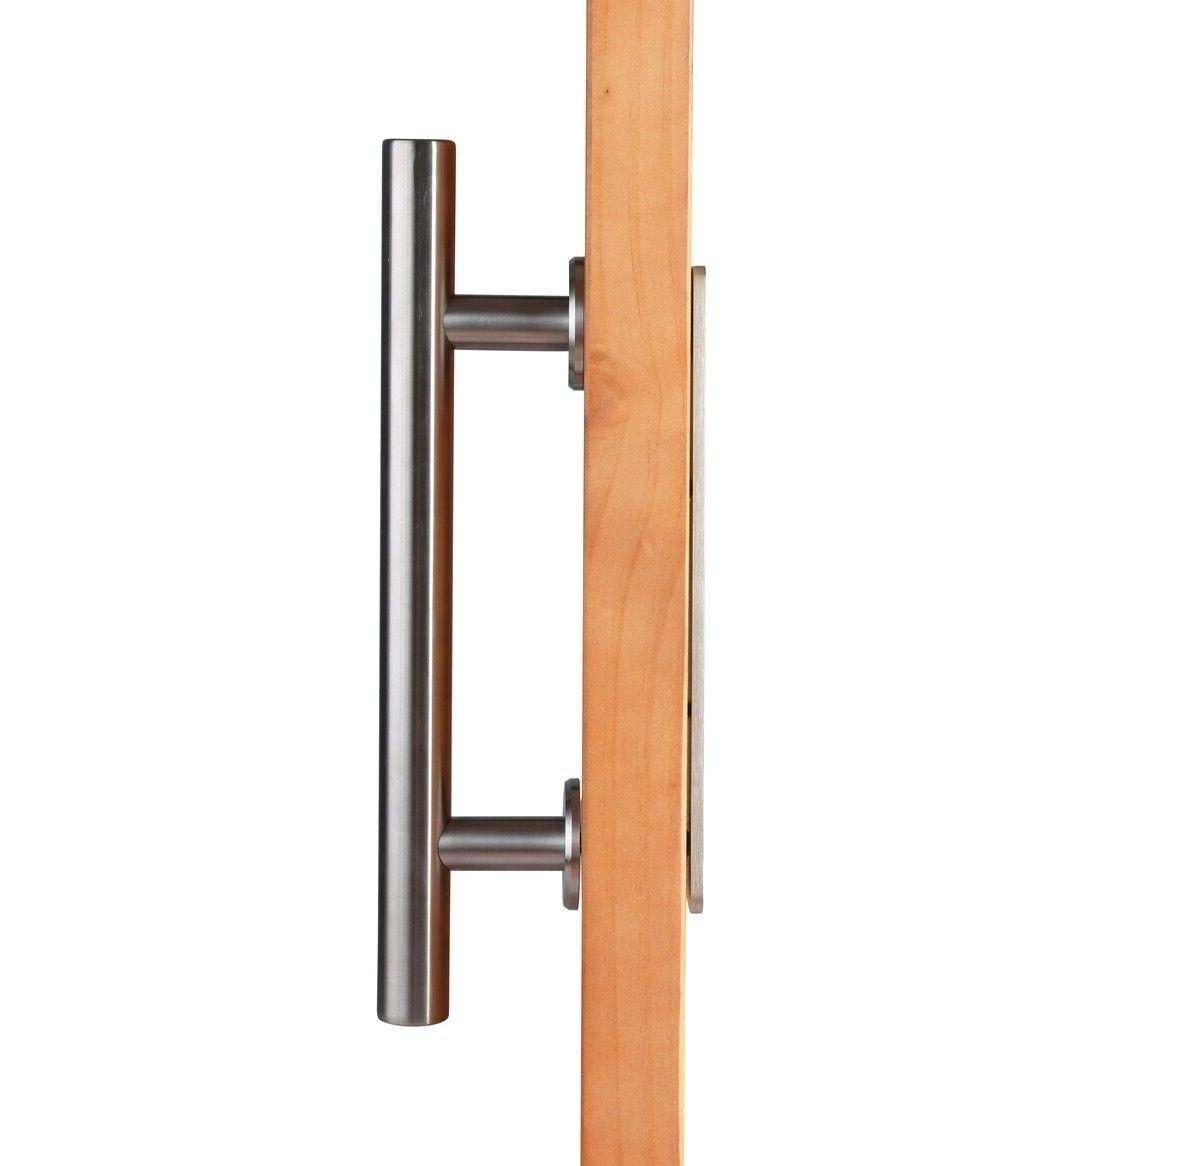 12'' Pull and Barn Door SS304 and